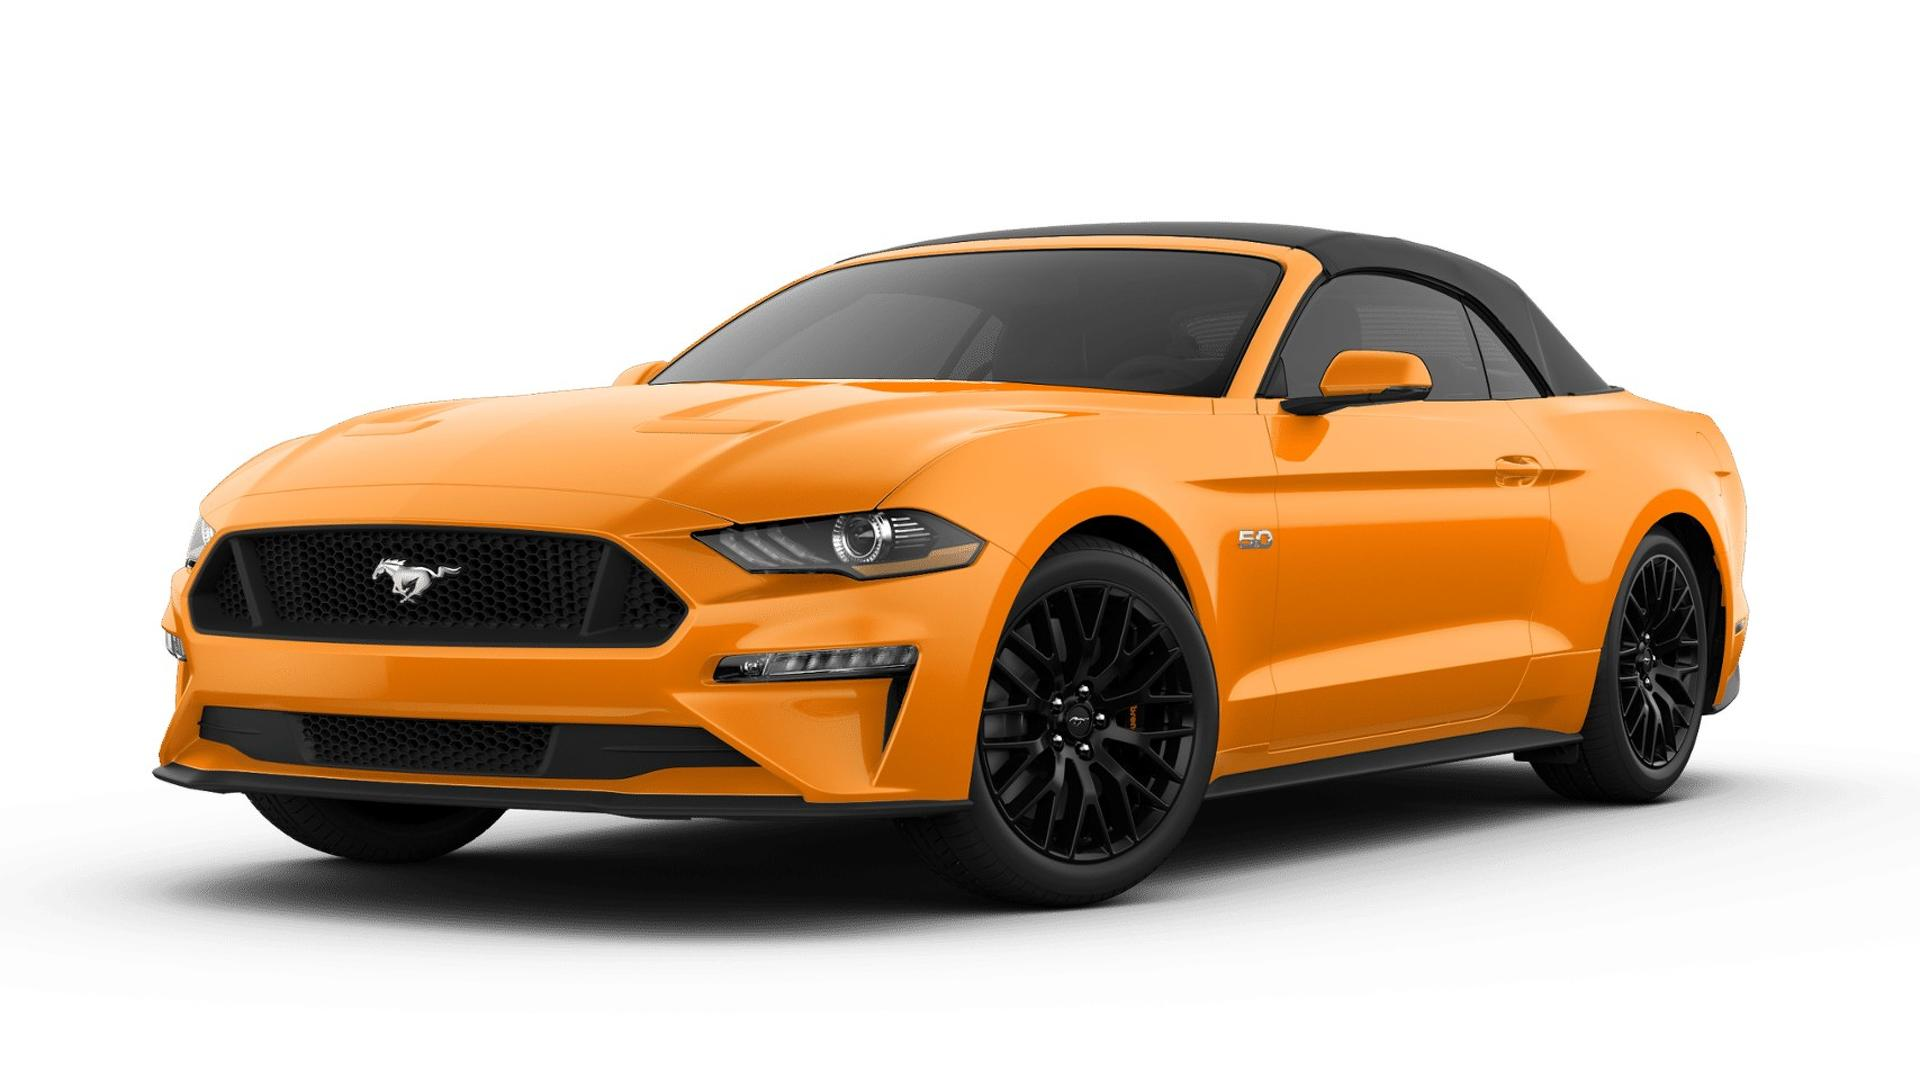 ford character more image mustang com look convertible autocarweek rear side